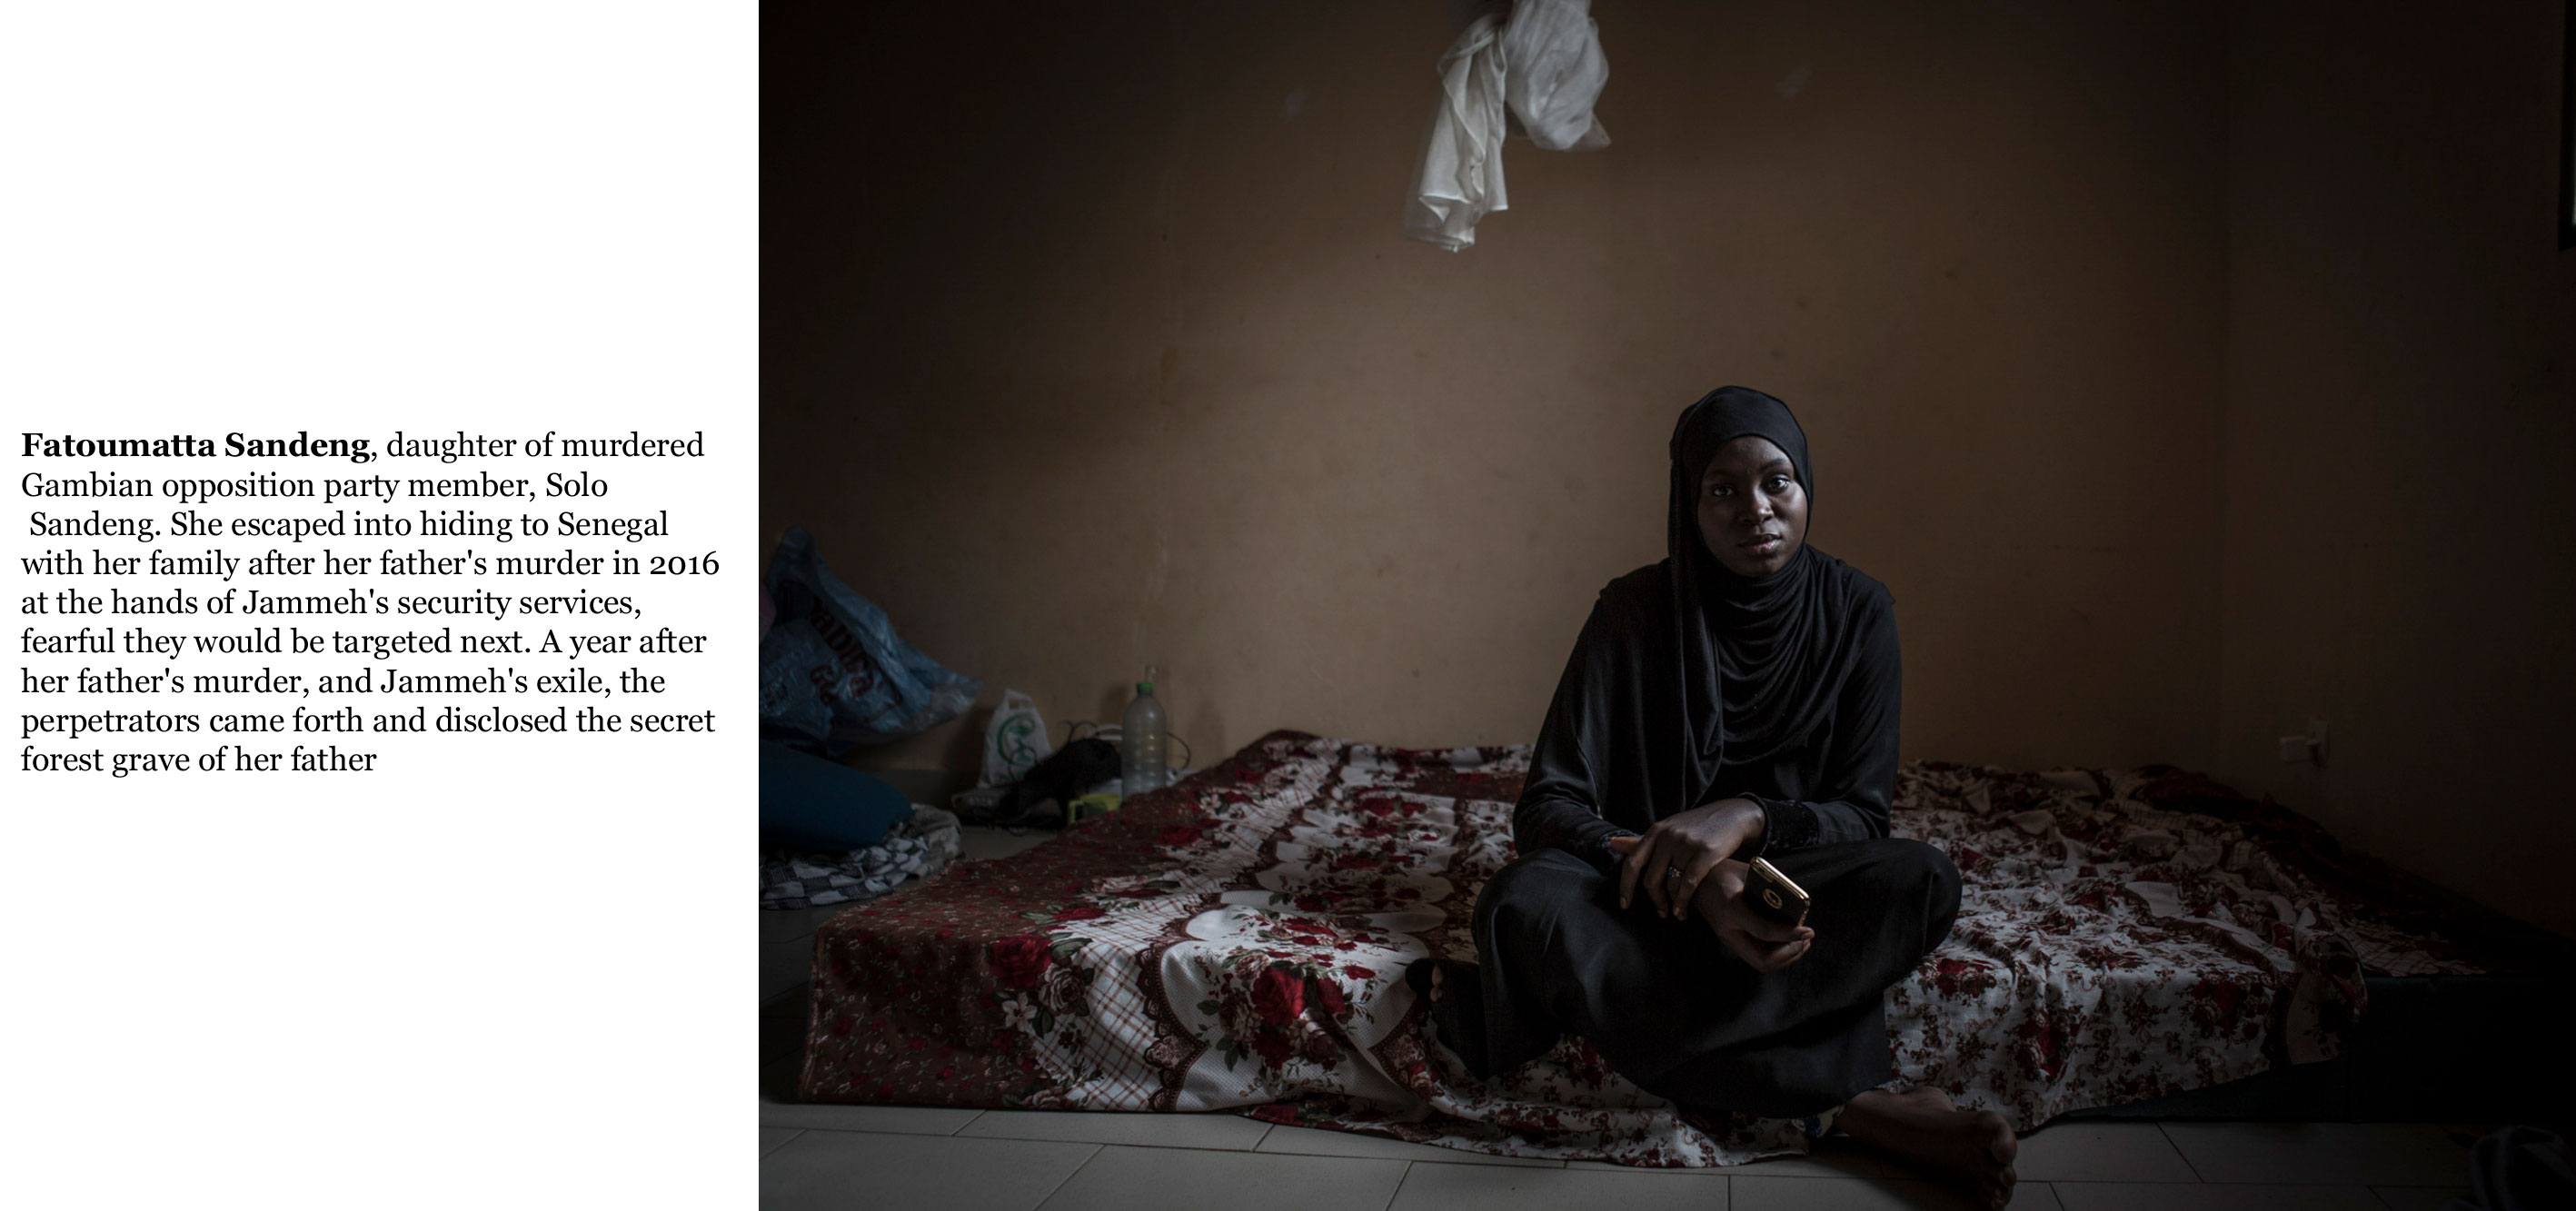 Gambia victims and resisters-Fatoumatta Sandeng, daughter of murdered opposition party member, Solo Sandeng ©Jason Florio